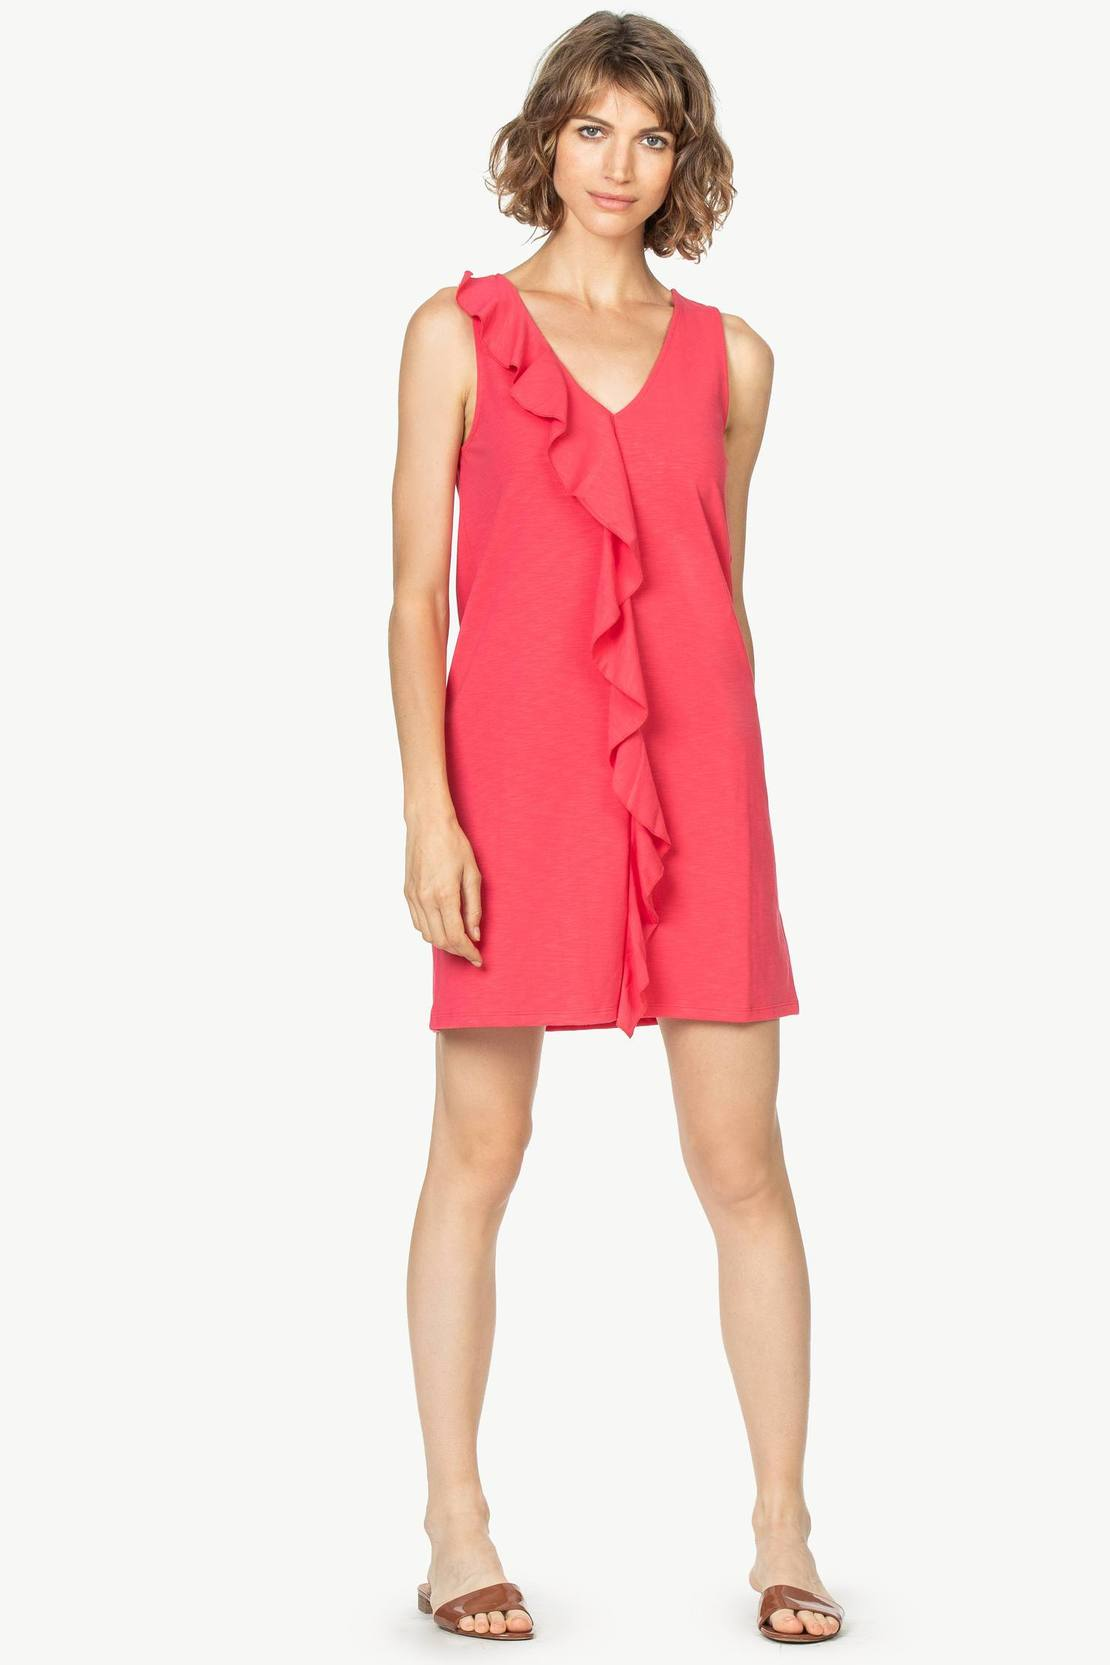 Ruffle front shift dress (PA1011)